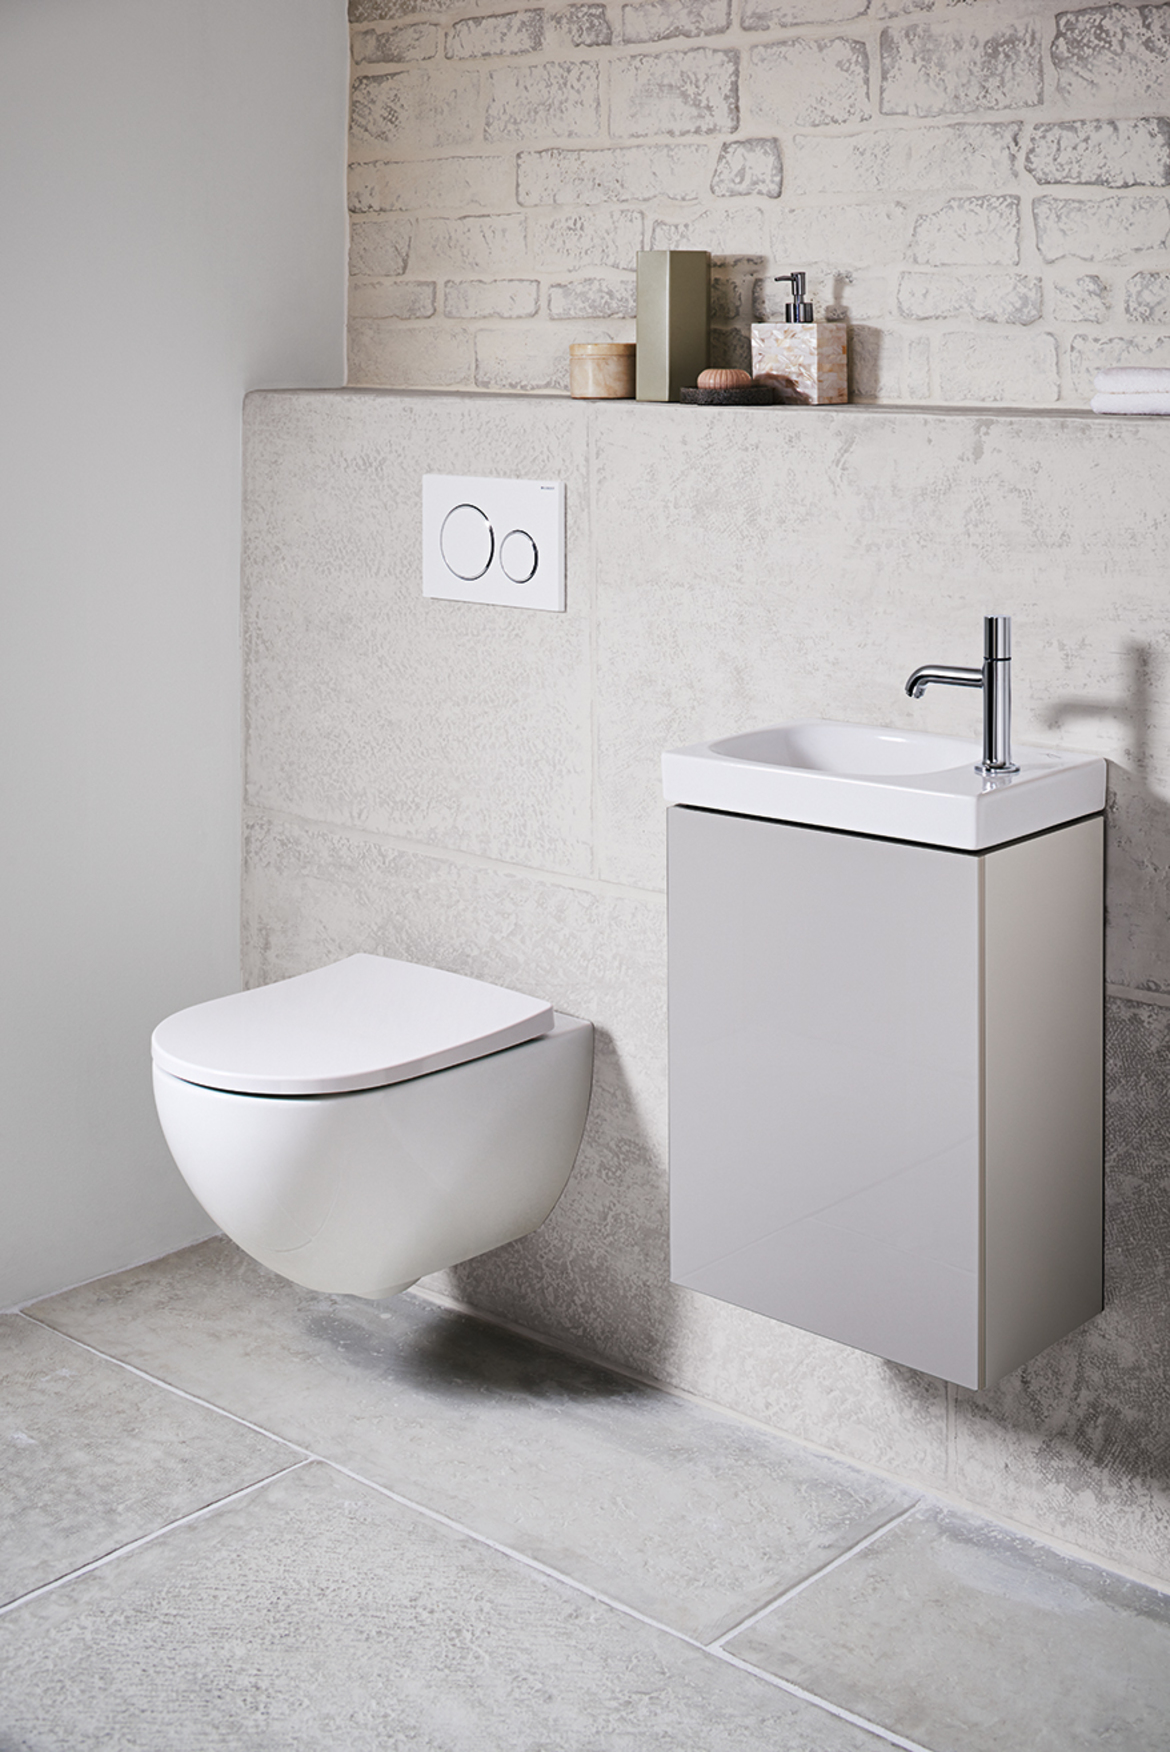 Geberit in-wall flush toilet tank systems for wall-hung toilets ...